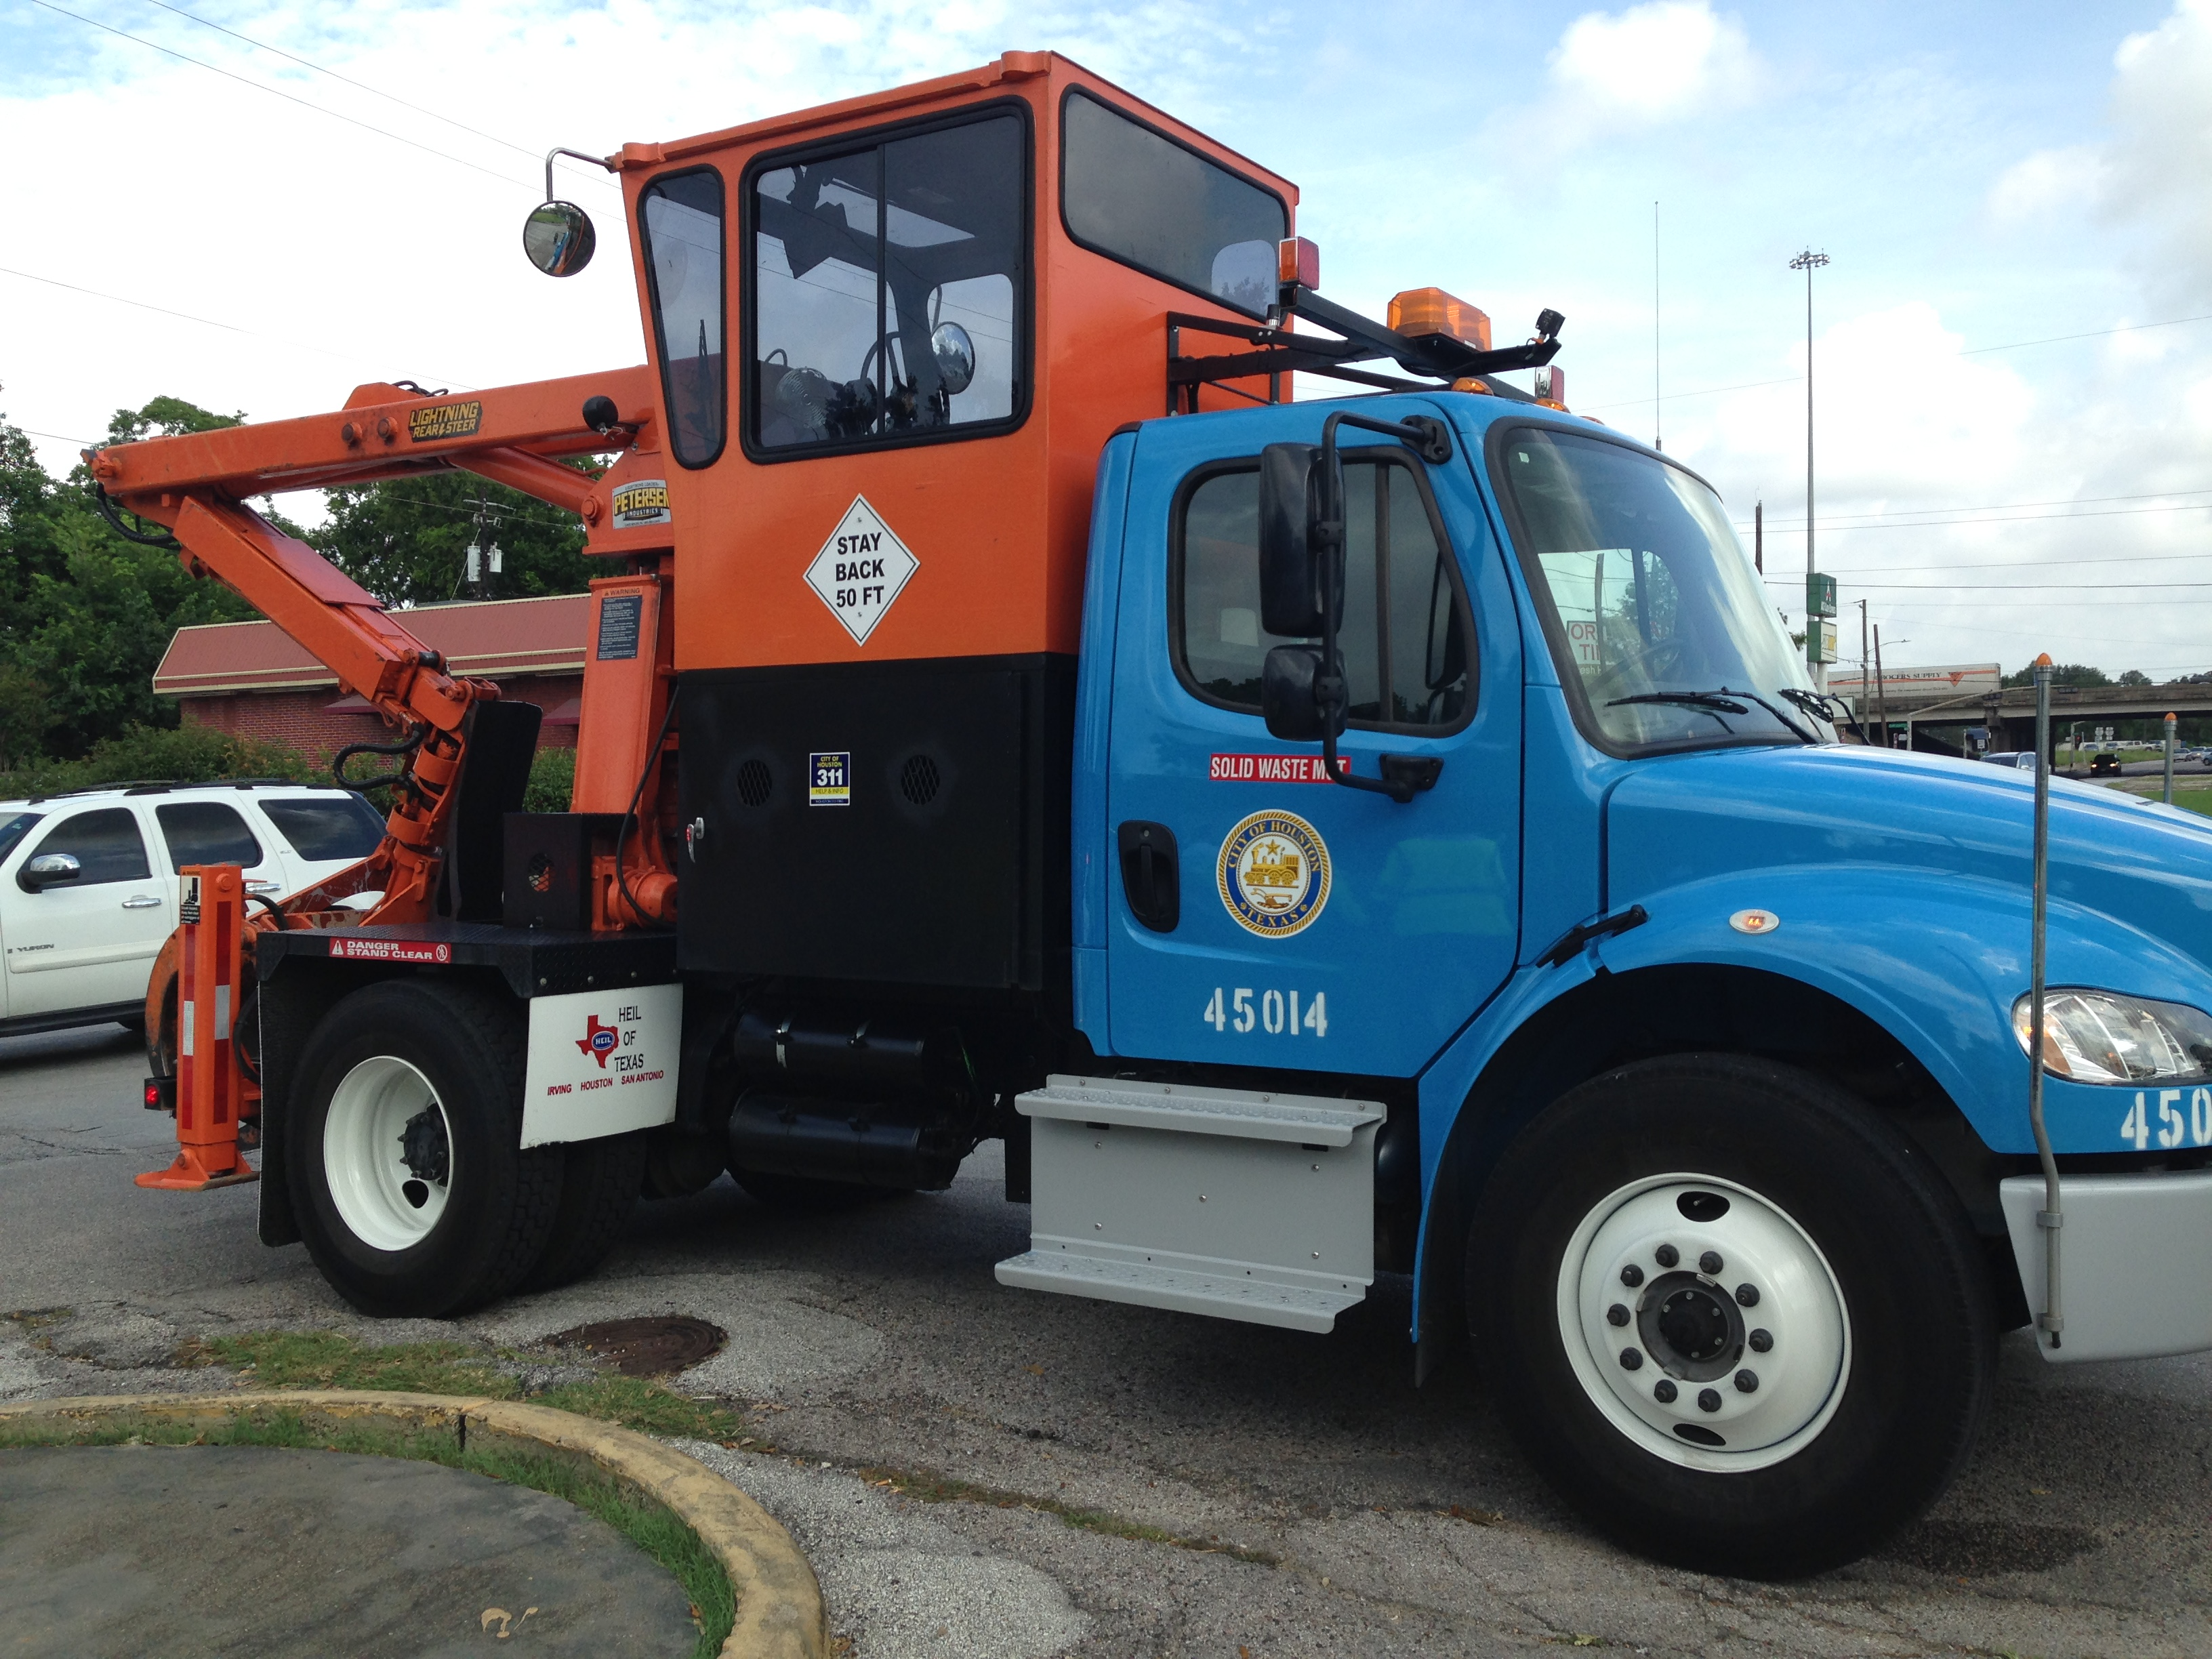 Heavy trash collection vehicle for District D